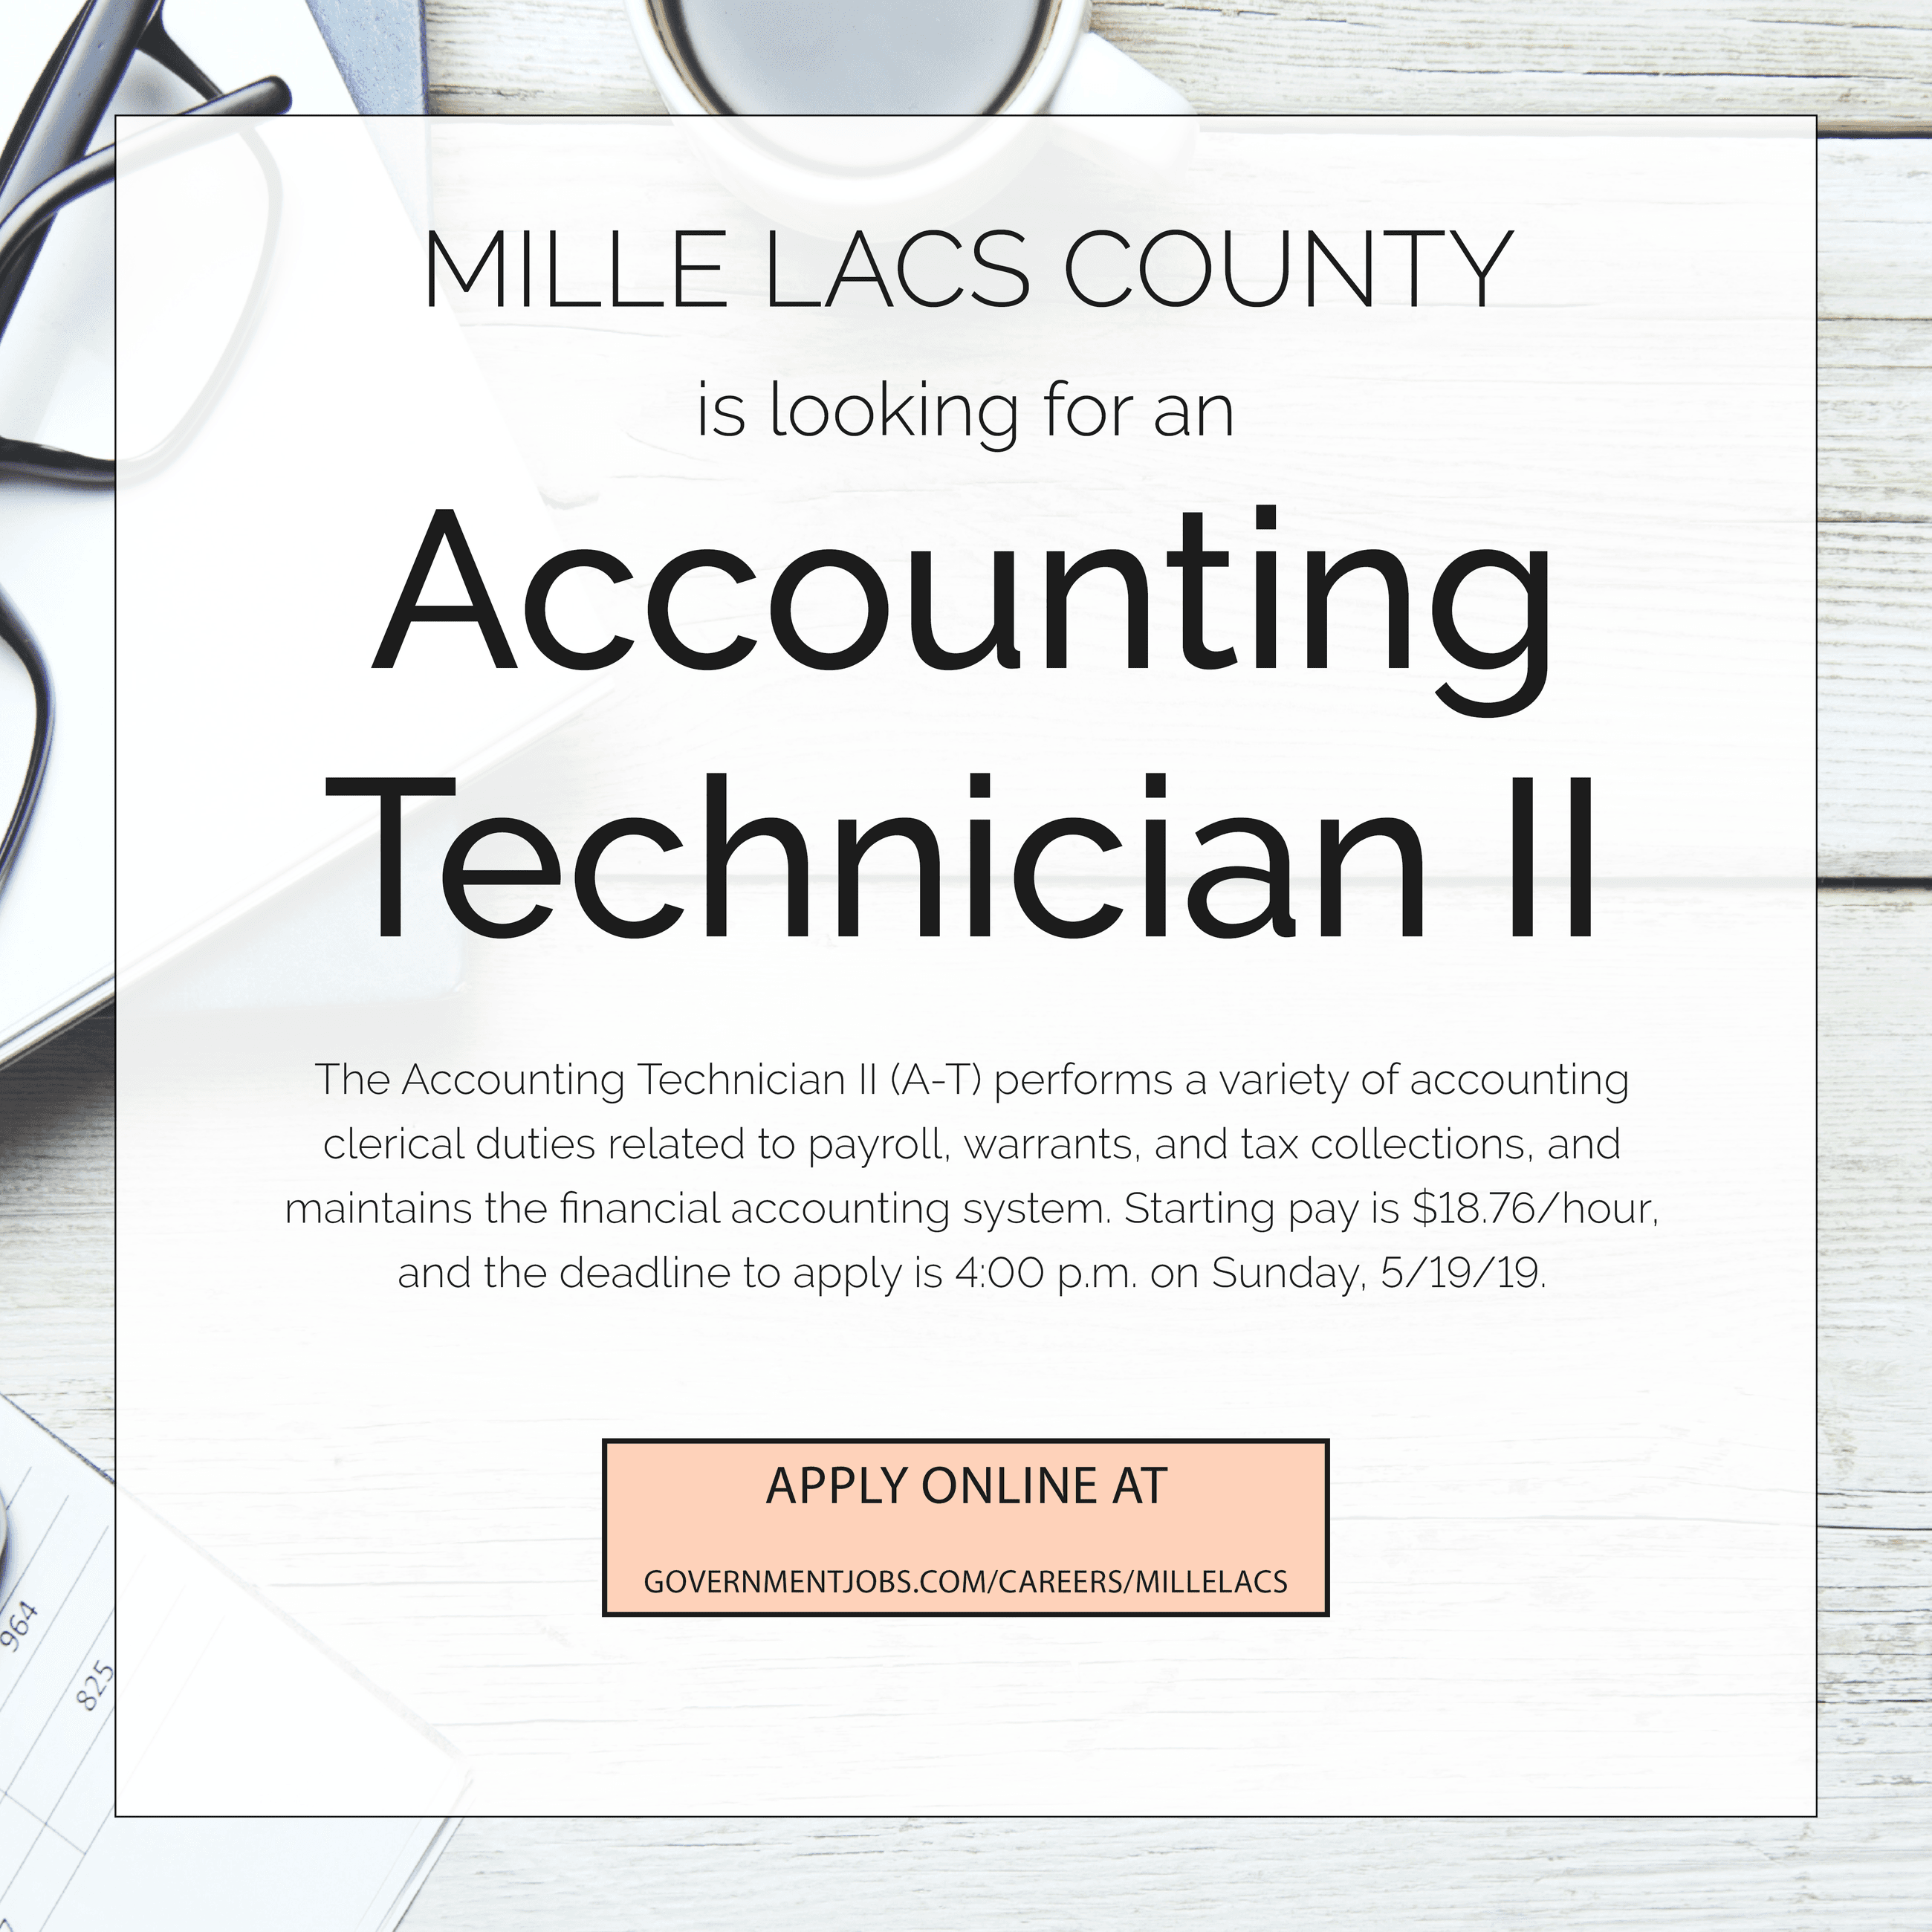 Mille Lacs County is hiring an Accounting Tech II position.